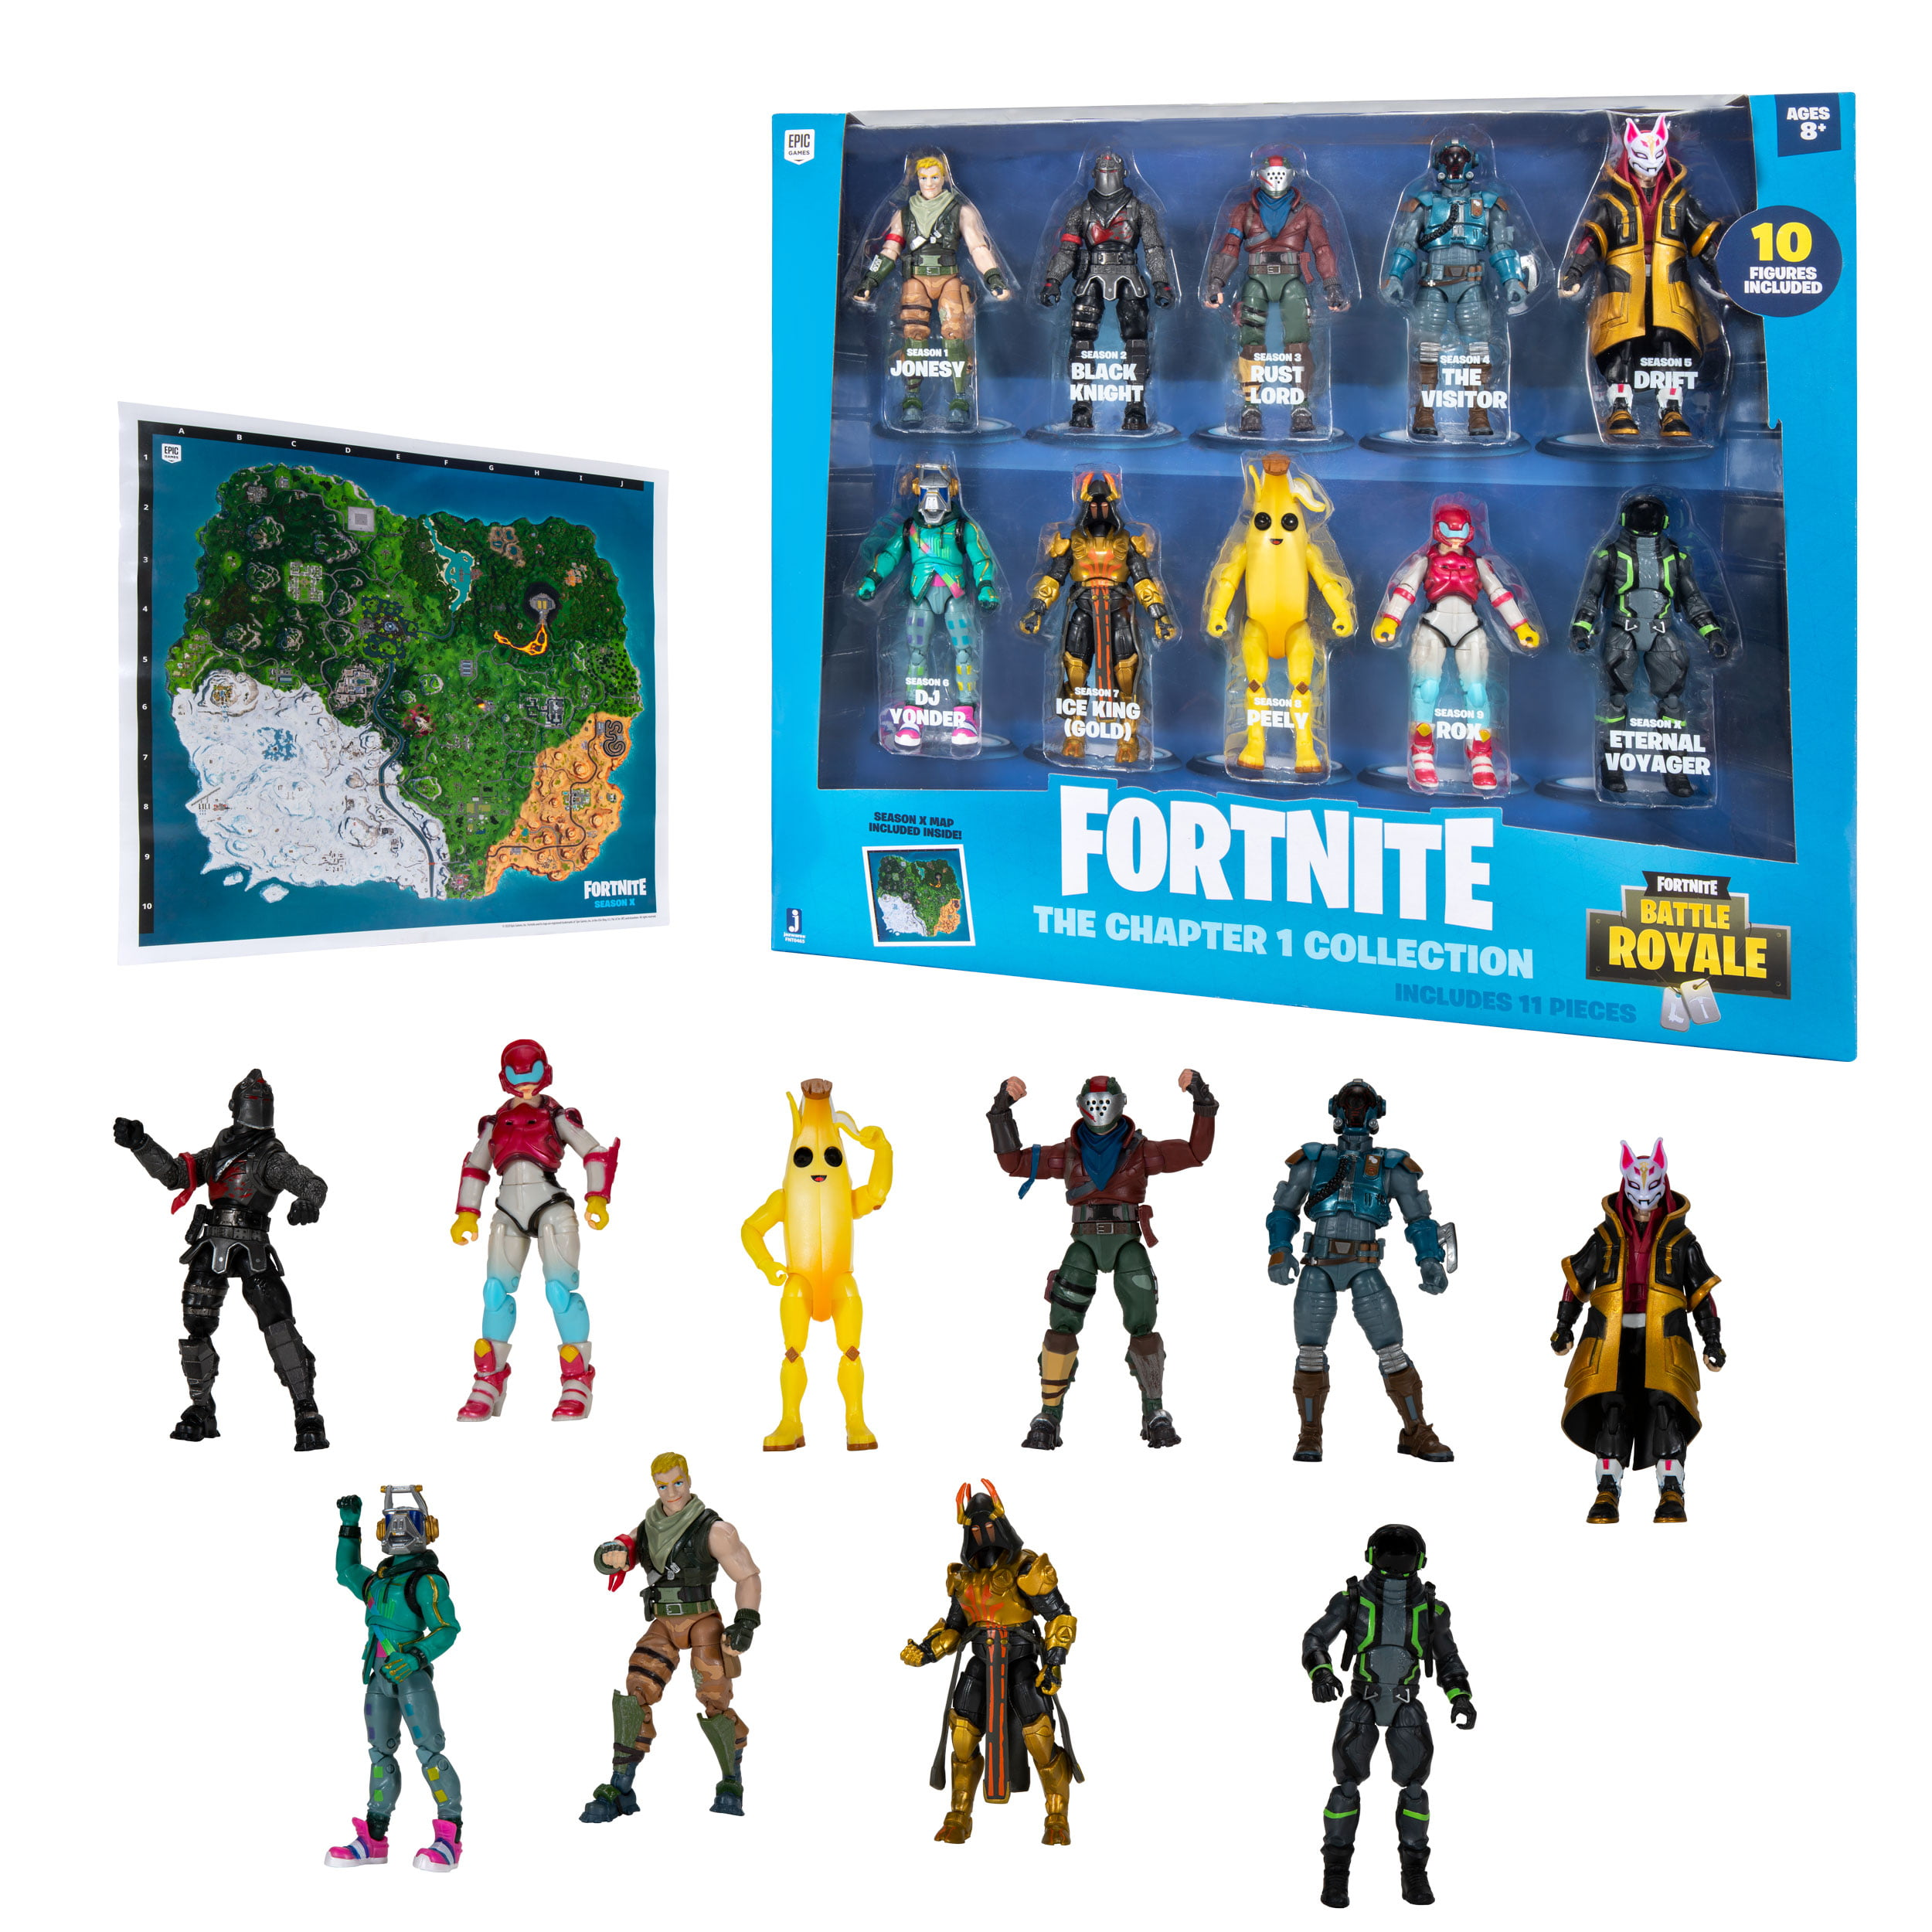 Fortnite The Chapter 1 Collection, 10 Figure Pack